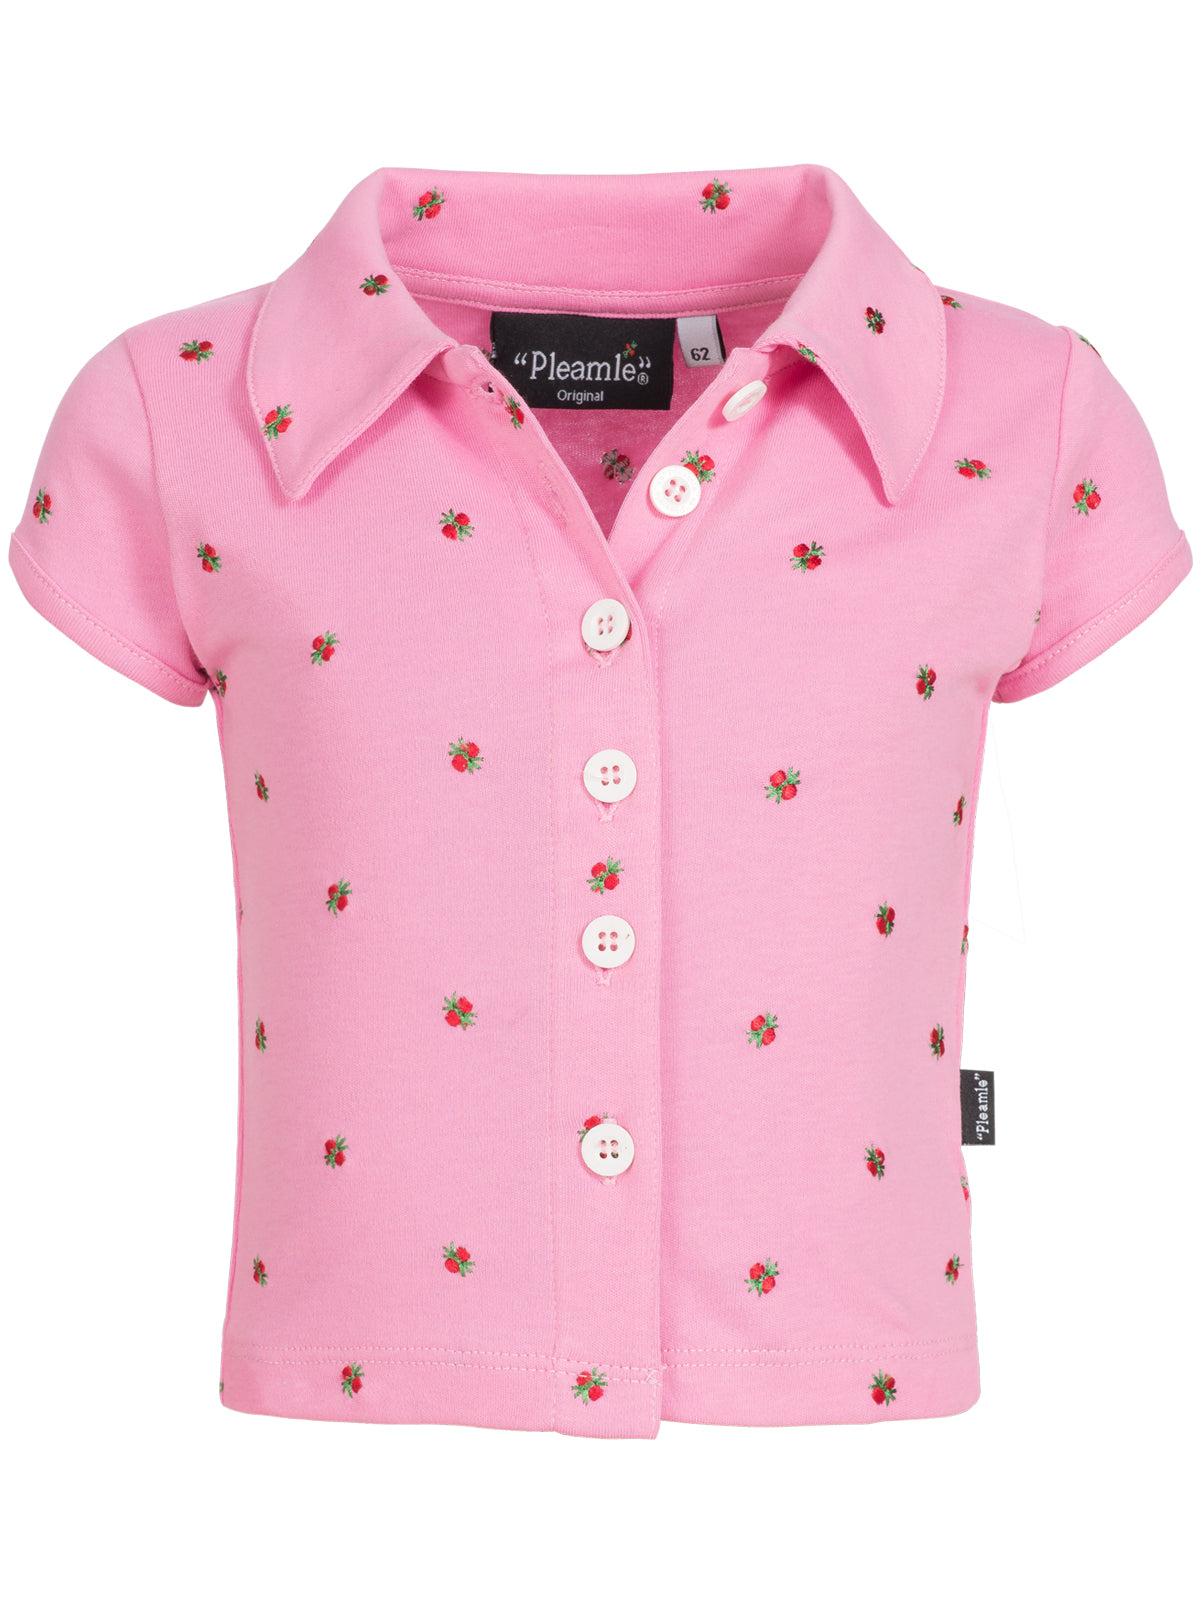 Pleamle Baby Polo Kurzarm Original rosa